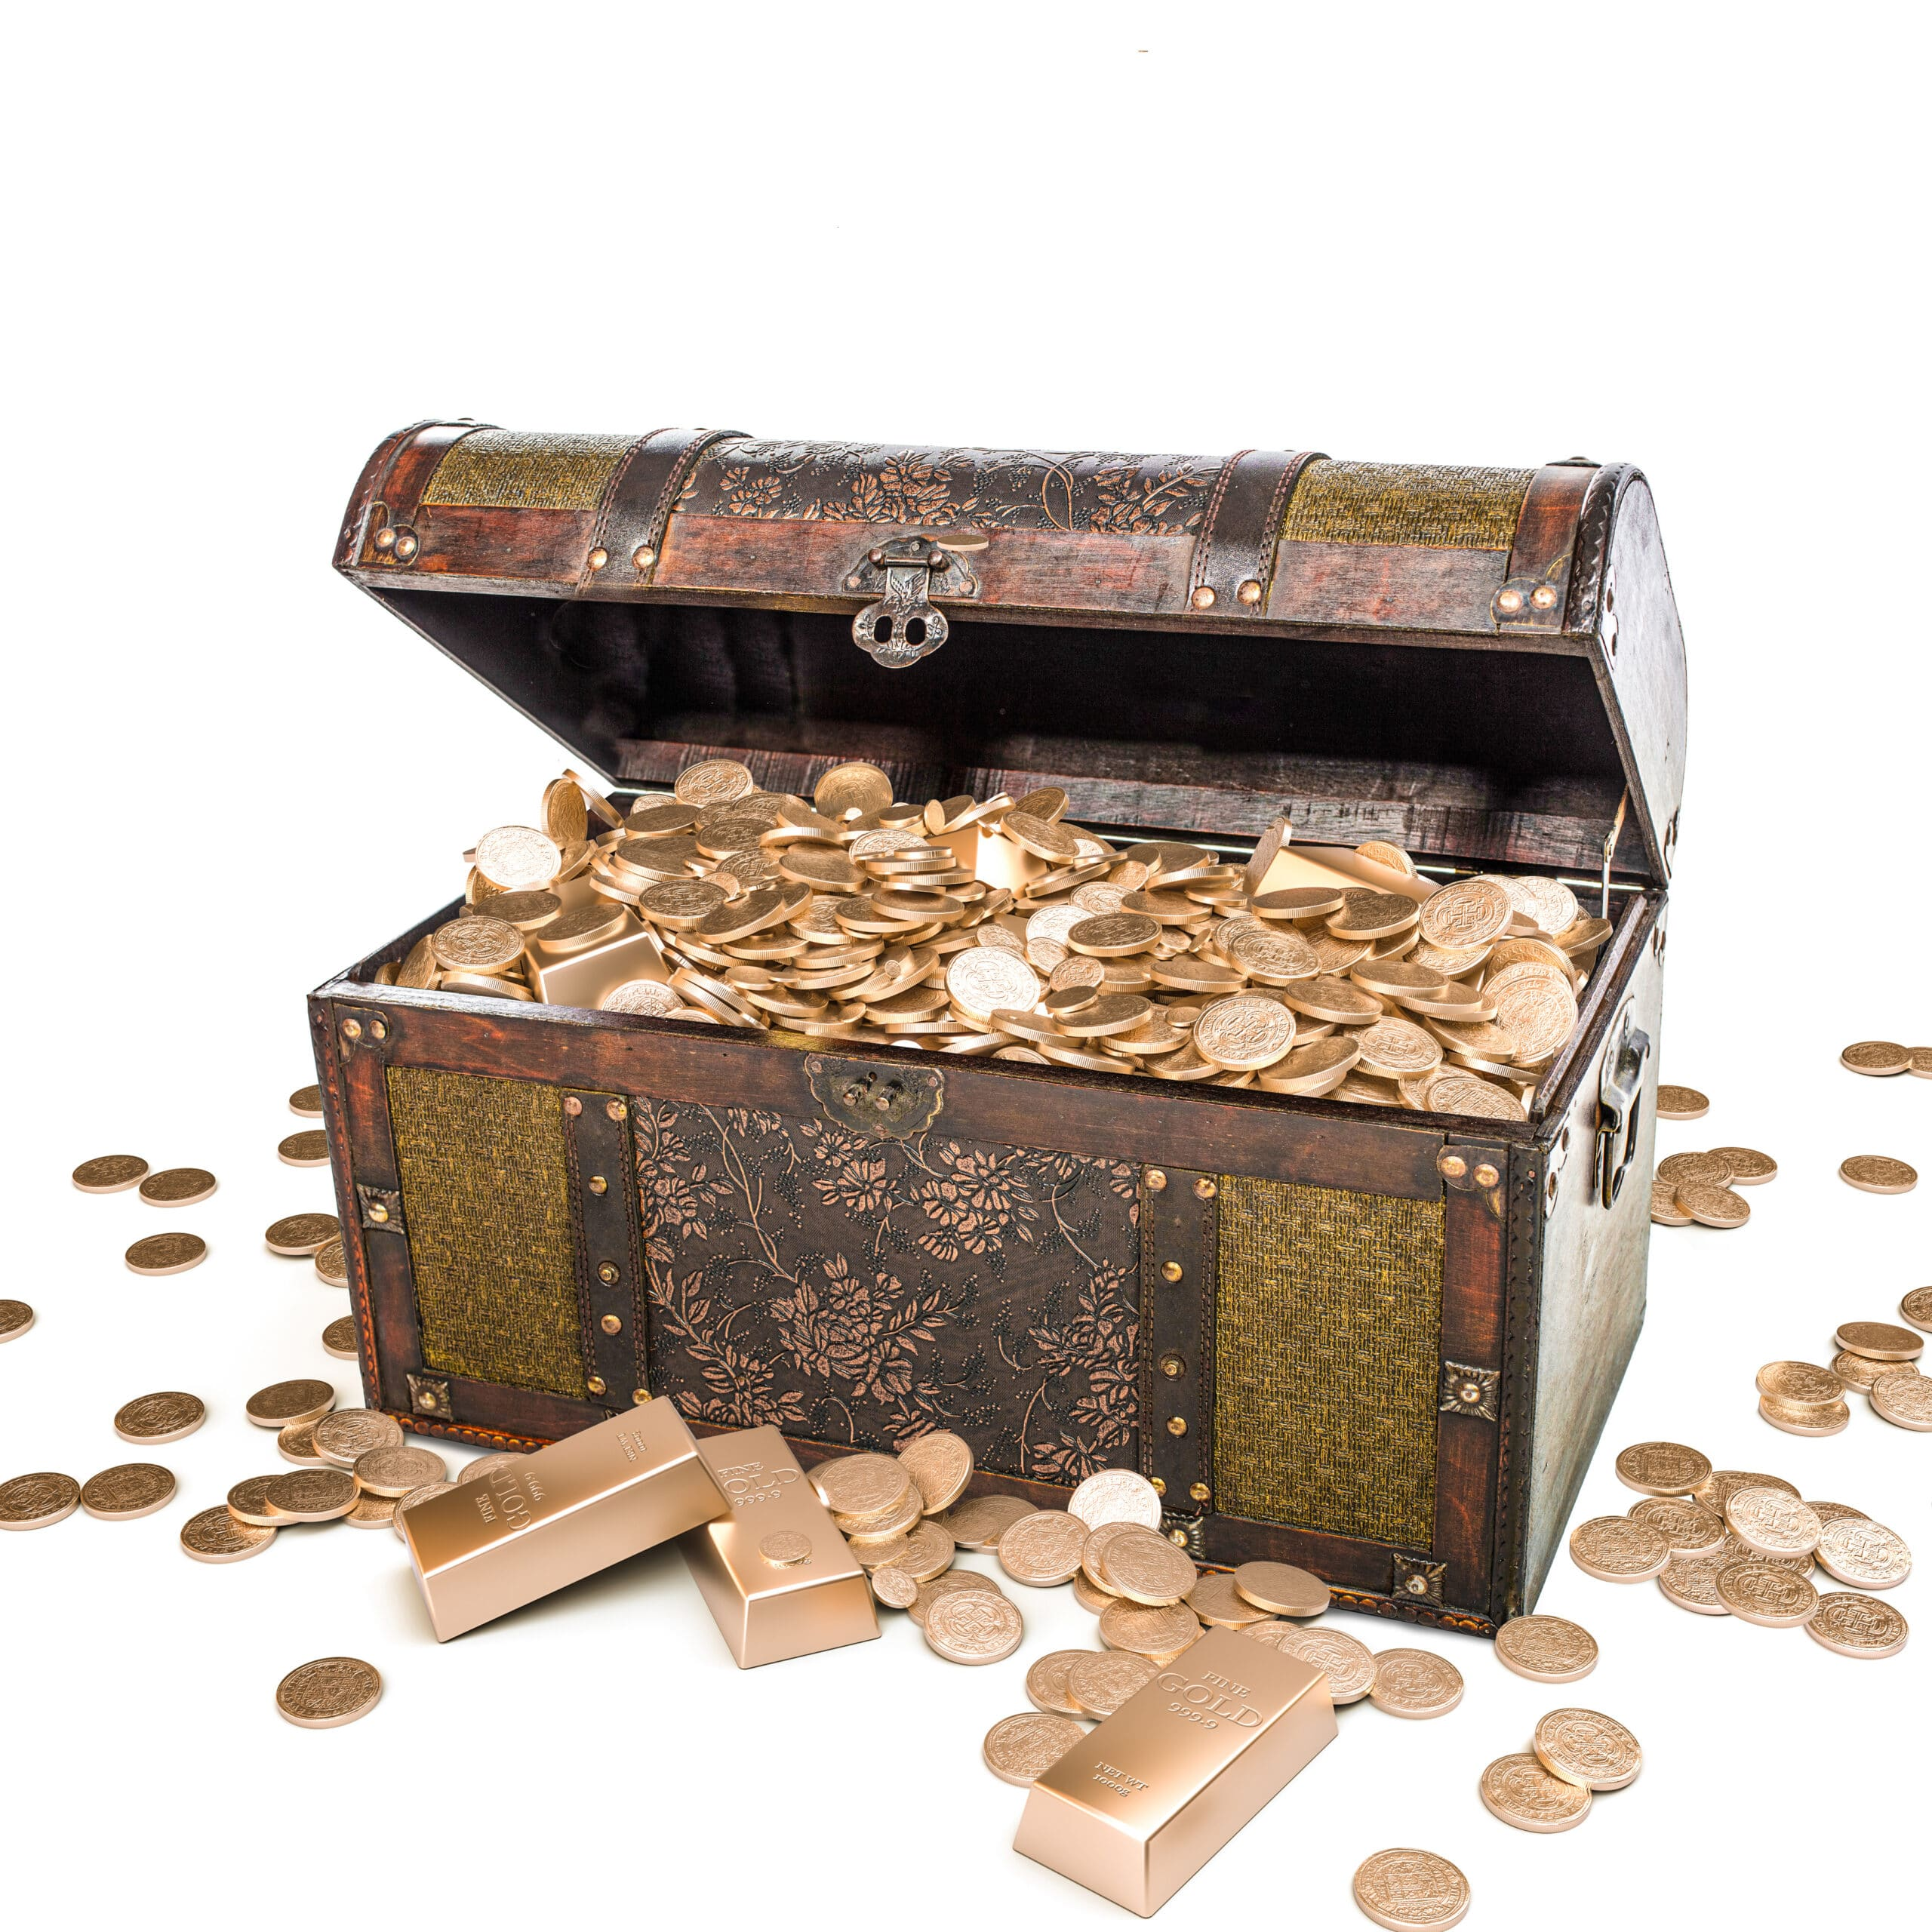 Chest full of gold coins.